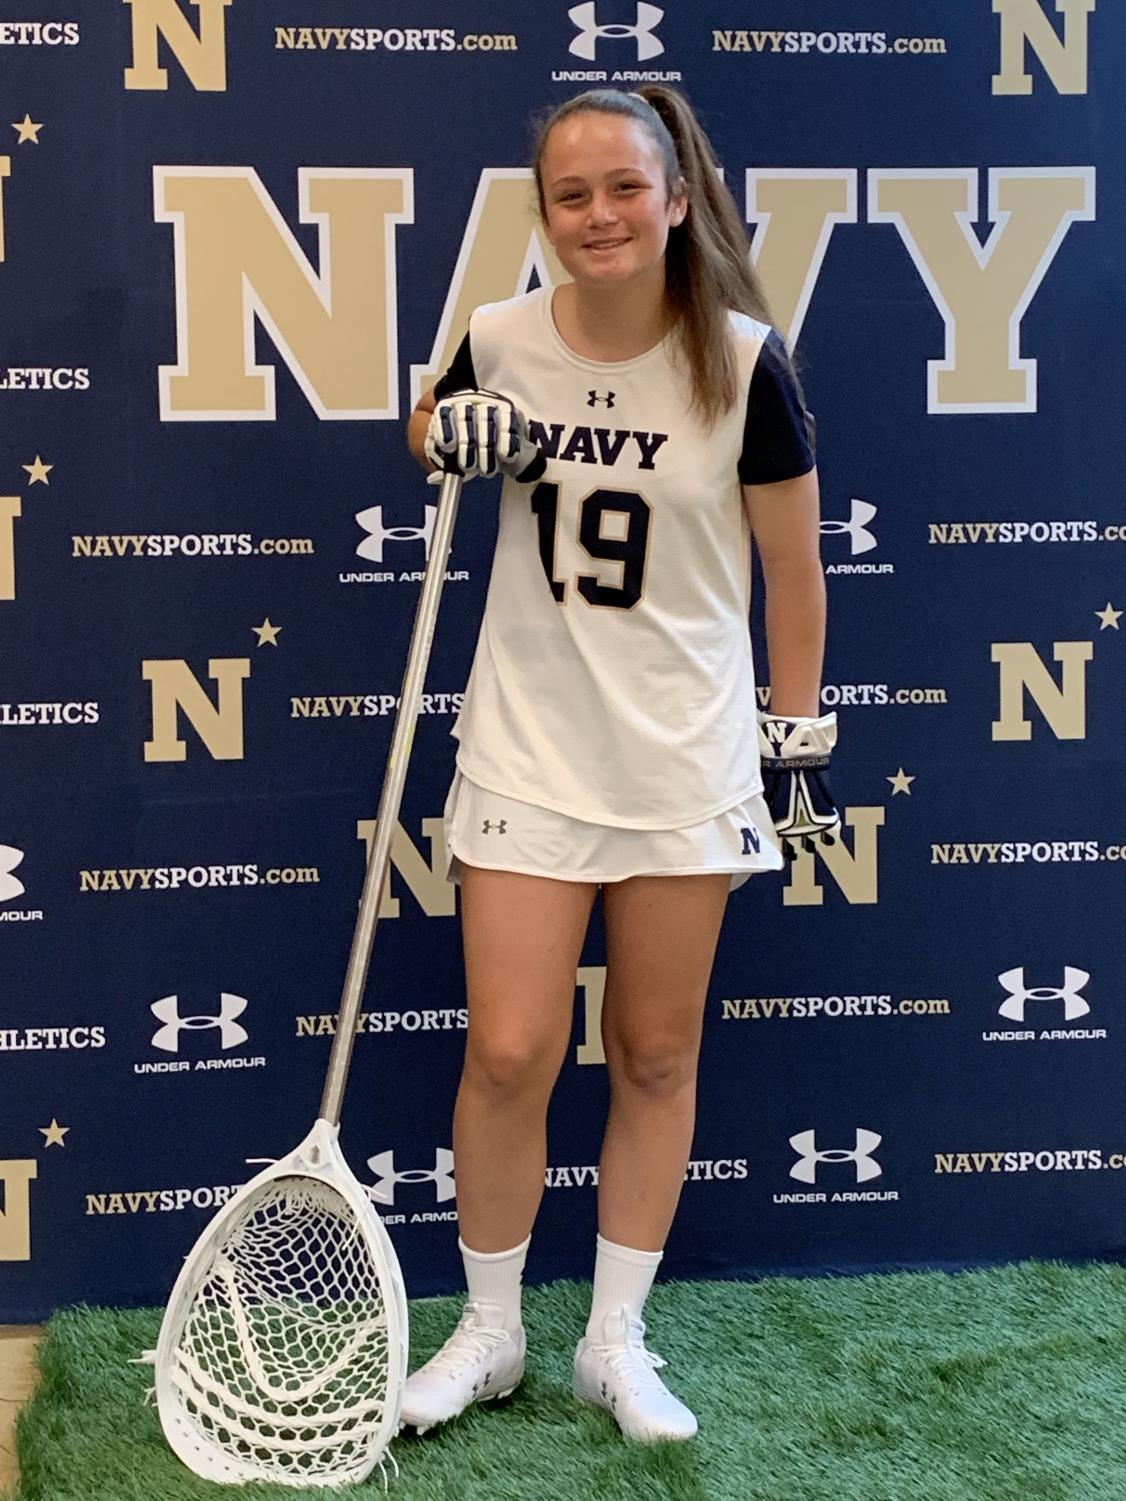 Junior  lacrosse player Emma Richardell poses in her new Navy gear. After she finishes her education, she will be in the US Navy for five years.